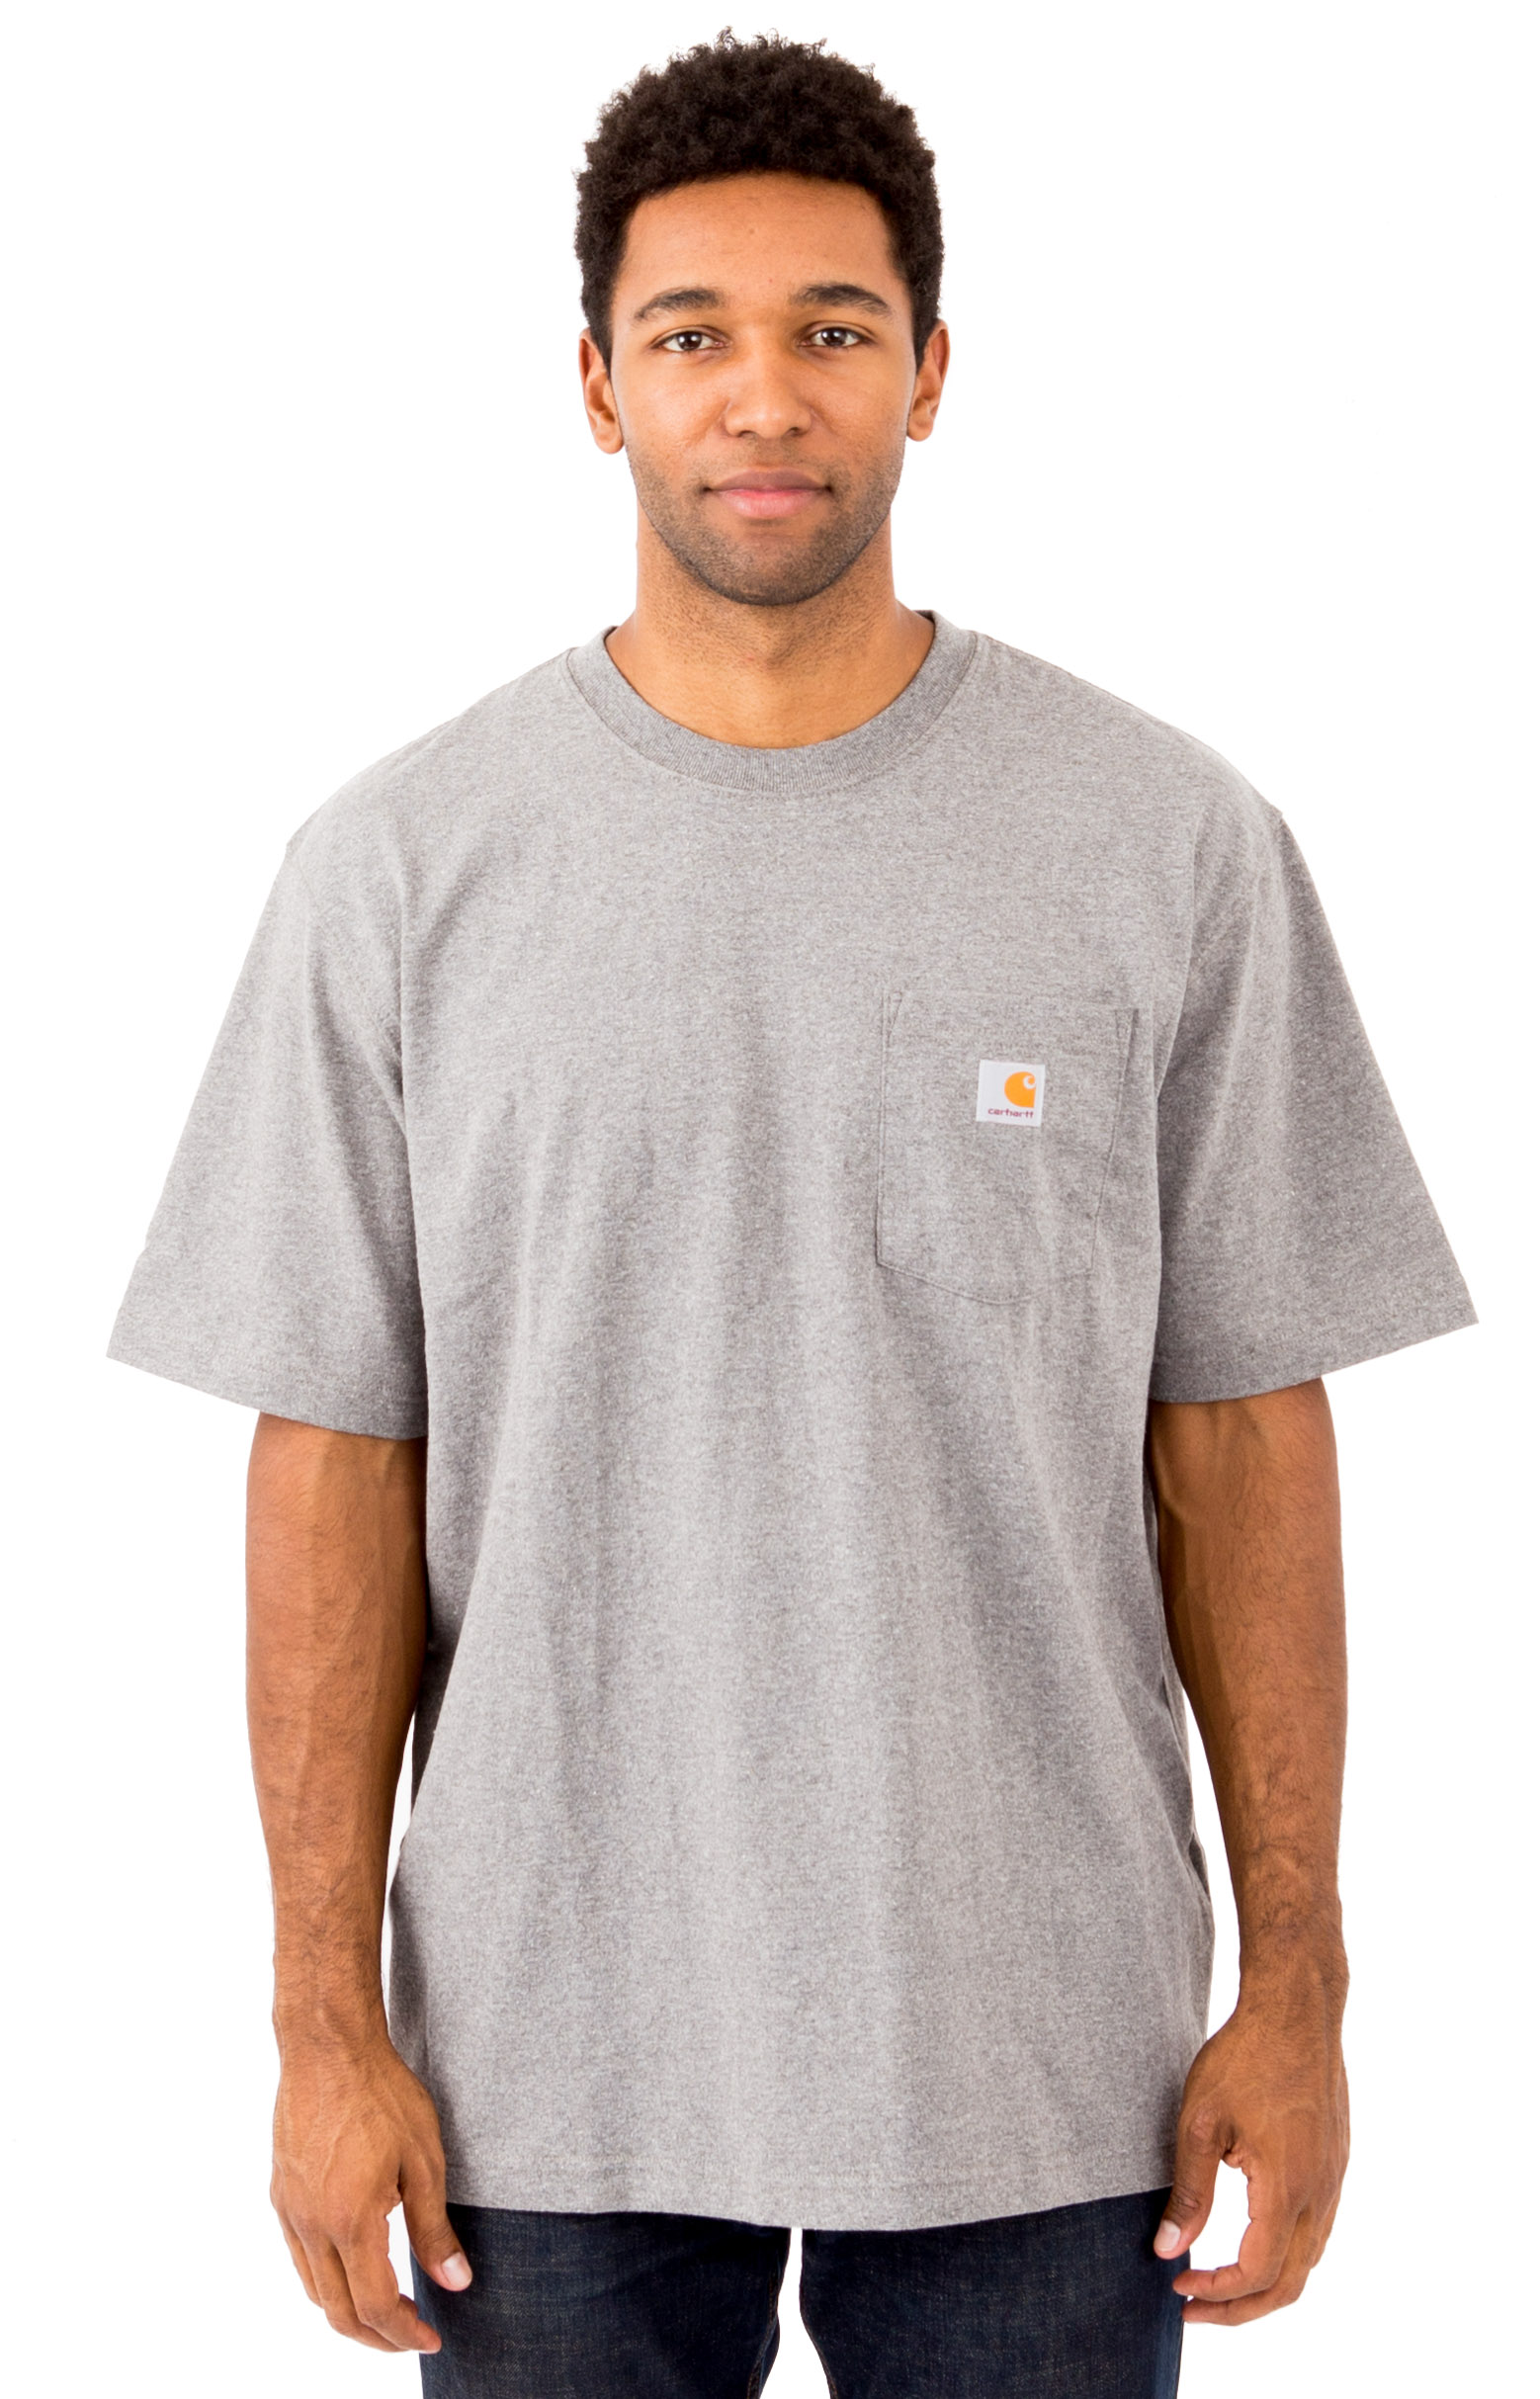 Carhartt, (K87) Workwear Pocket T-Shirt - Granite Heather